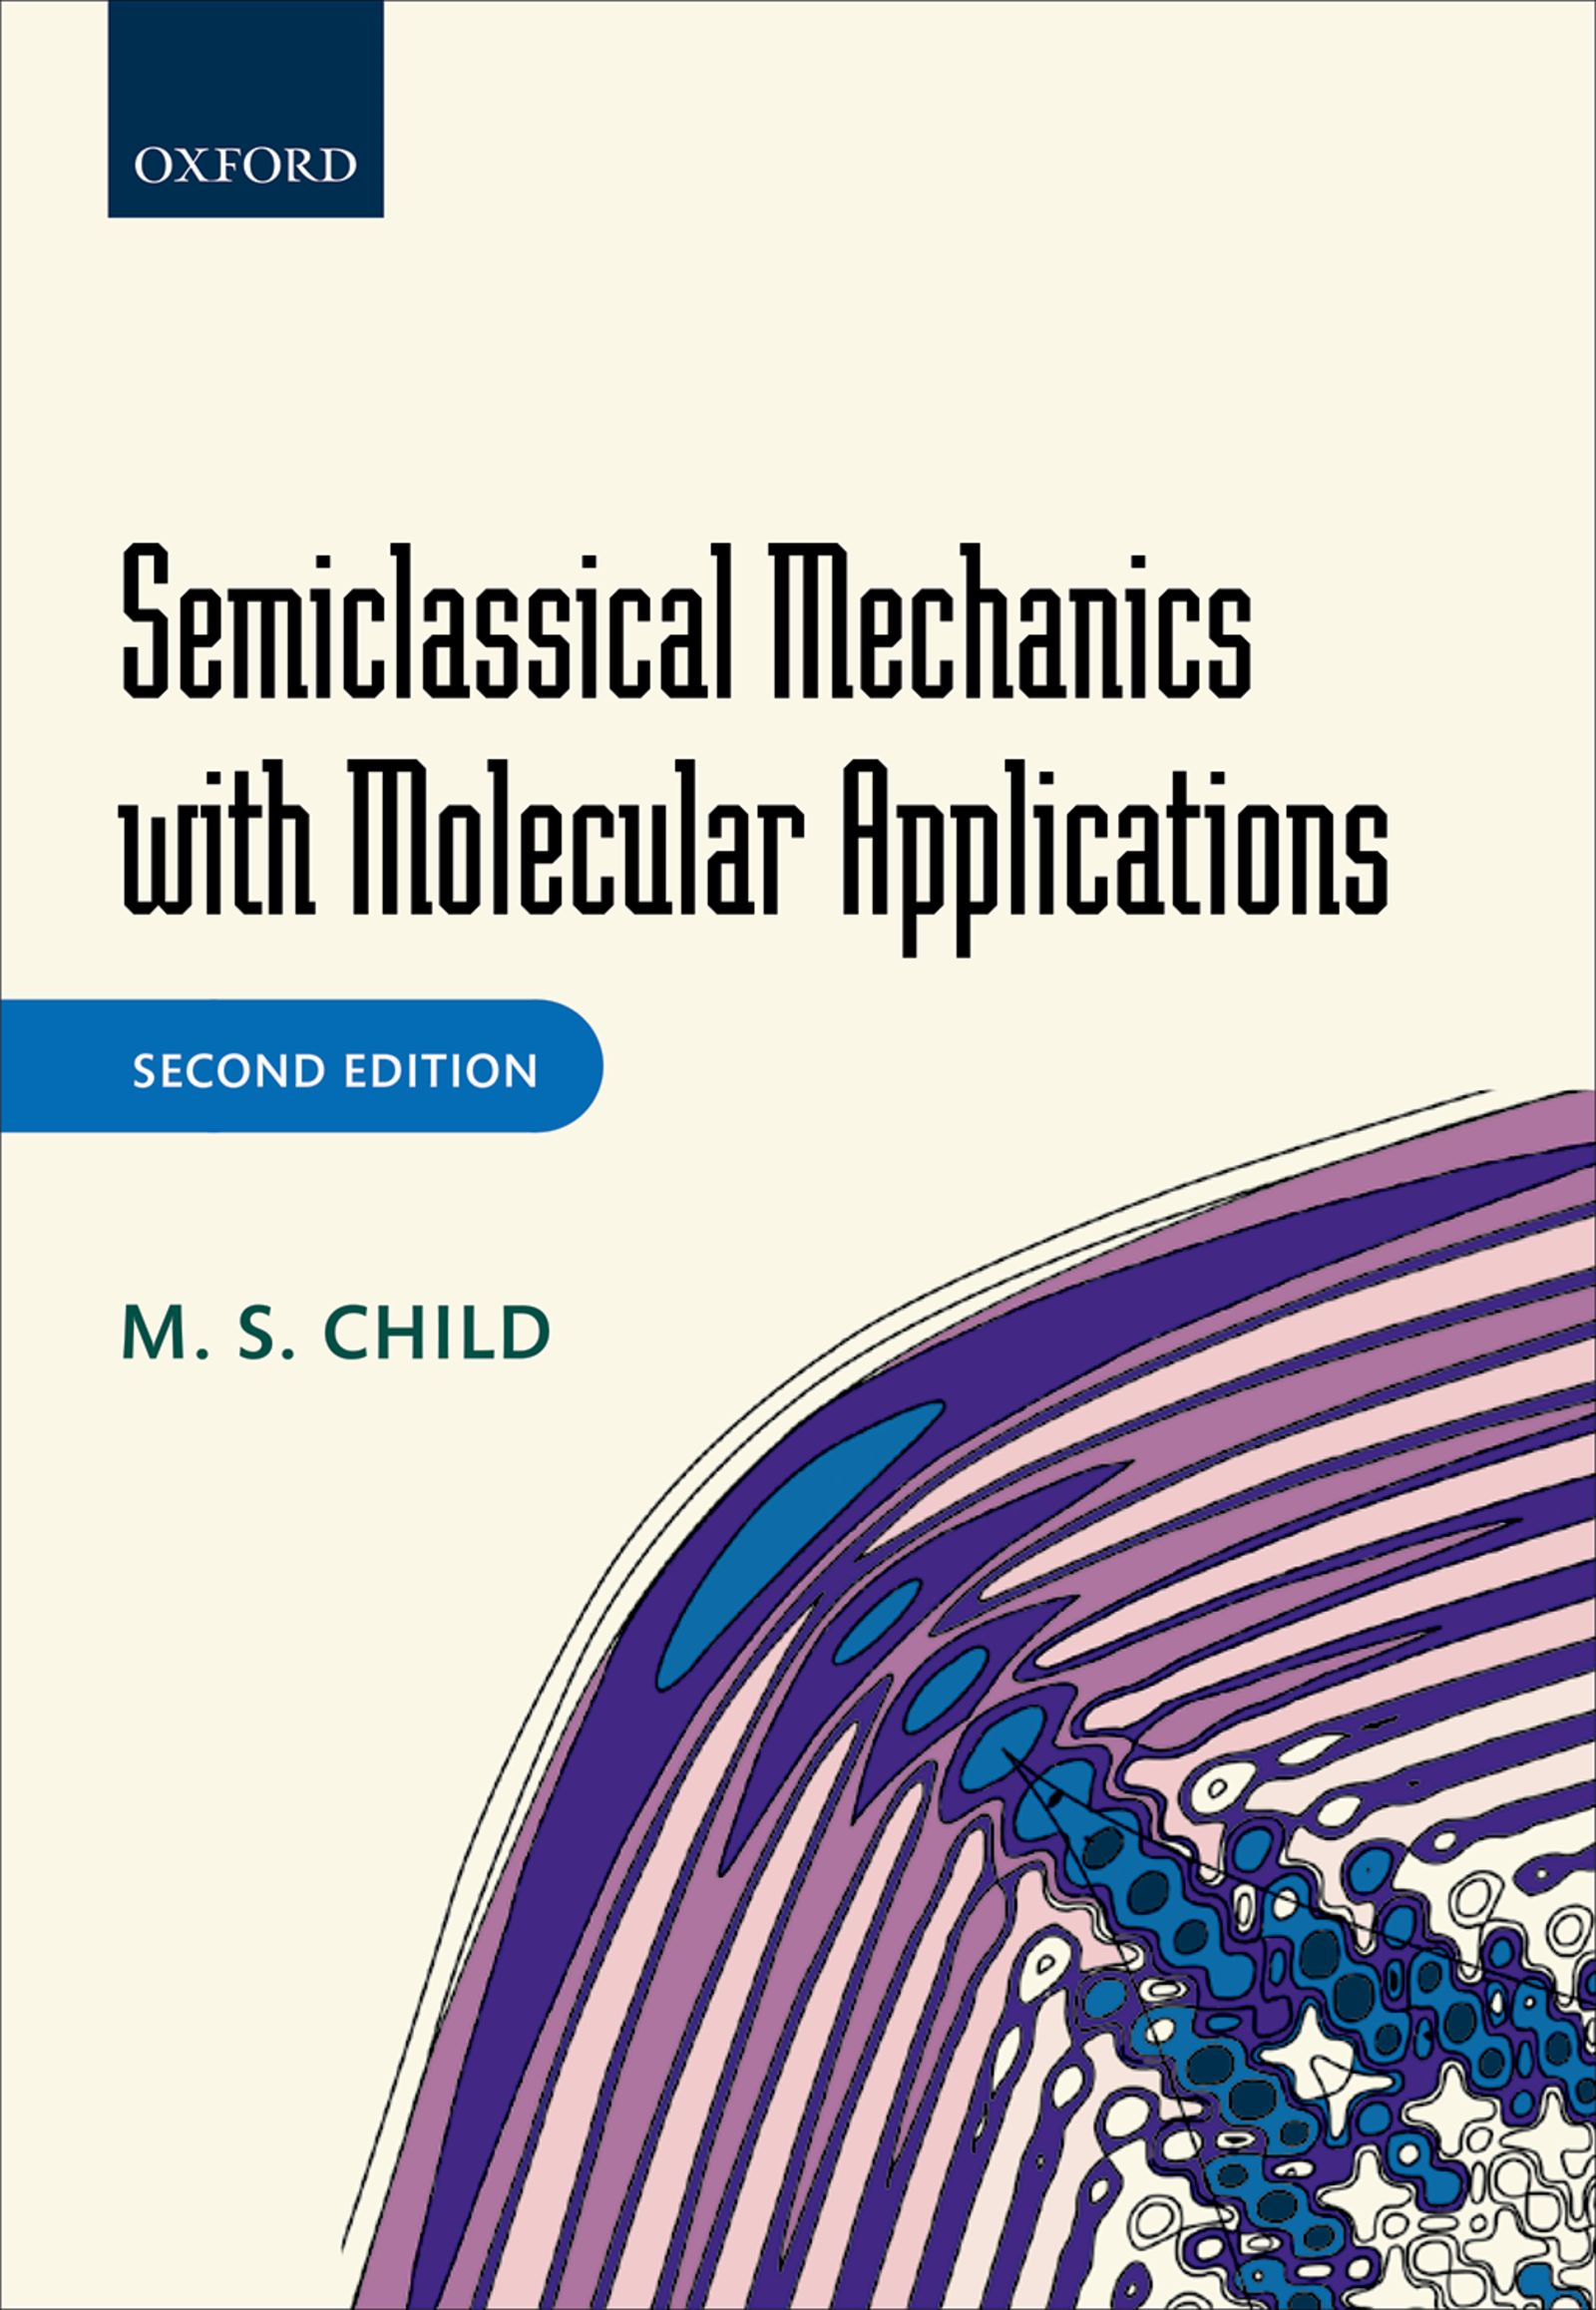 Semiclassical Mechanics with Molecular Applications